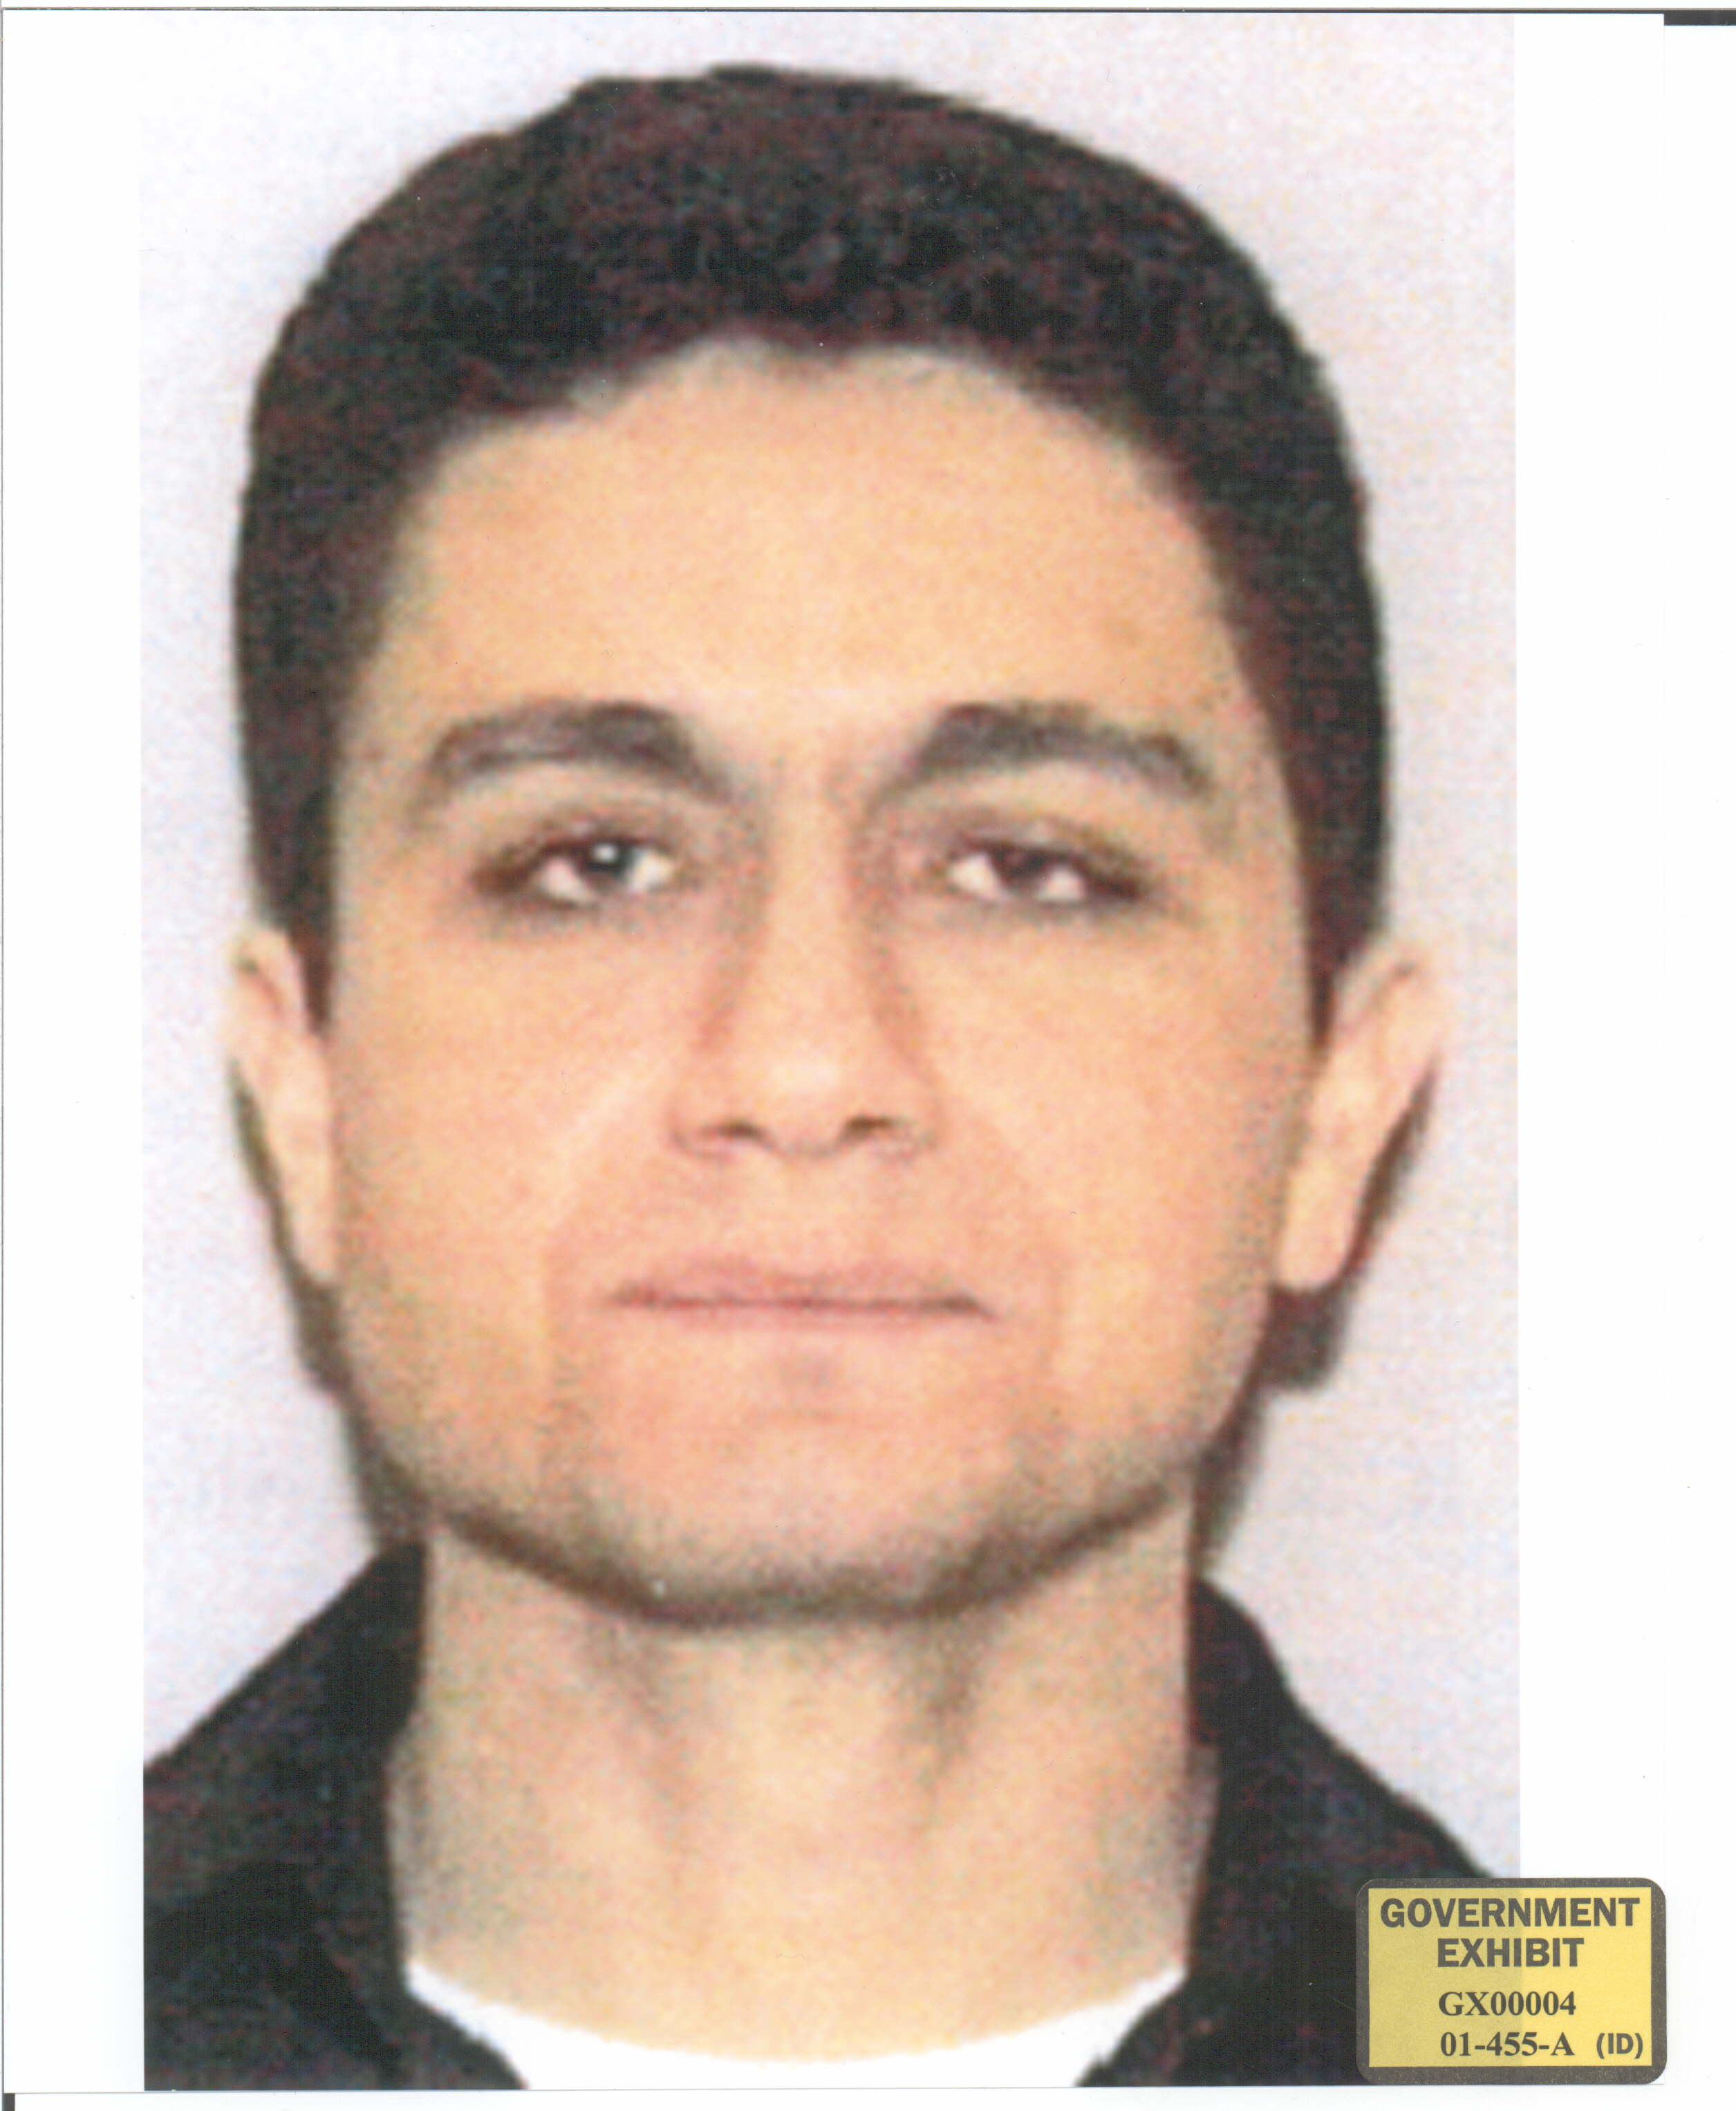 ... ] [ Hijacker resources and links ] [ Mohamed Atta ] [Hijackers